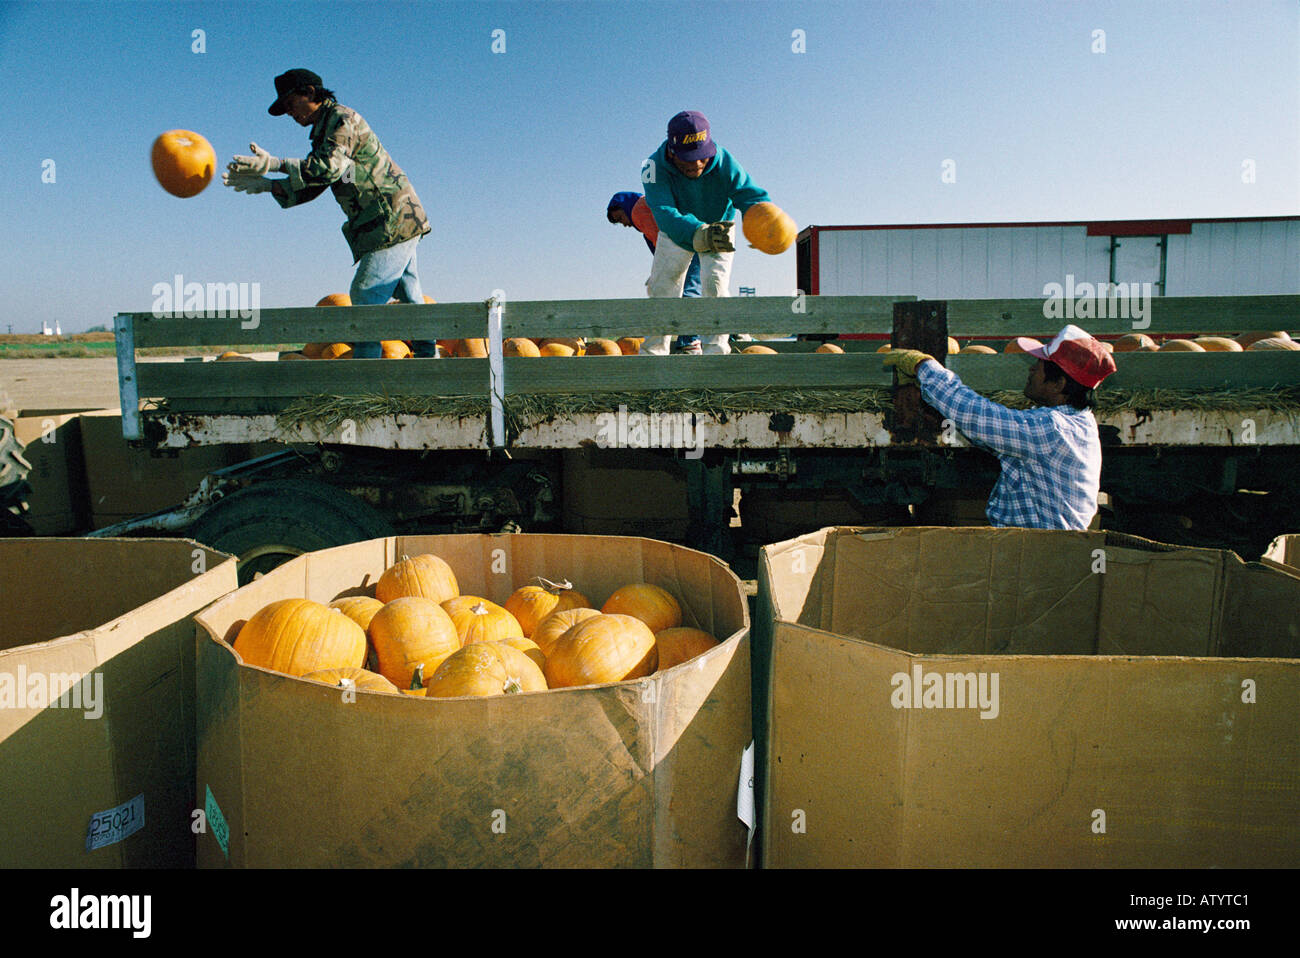 USA, California, migrant workers collecting pumpkins - Stock Image